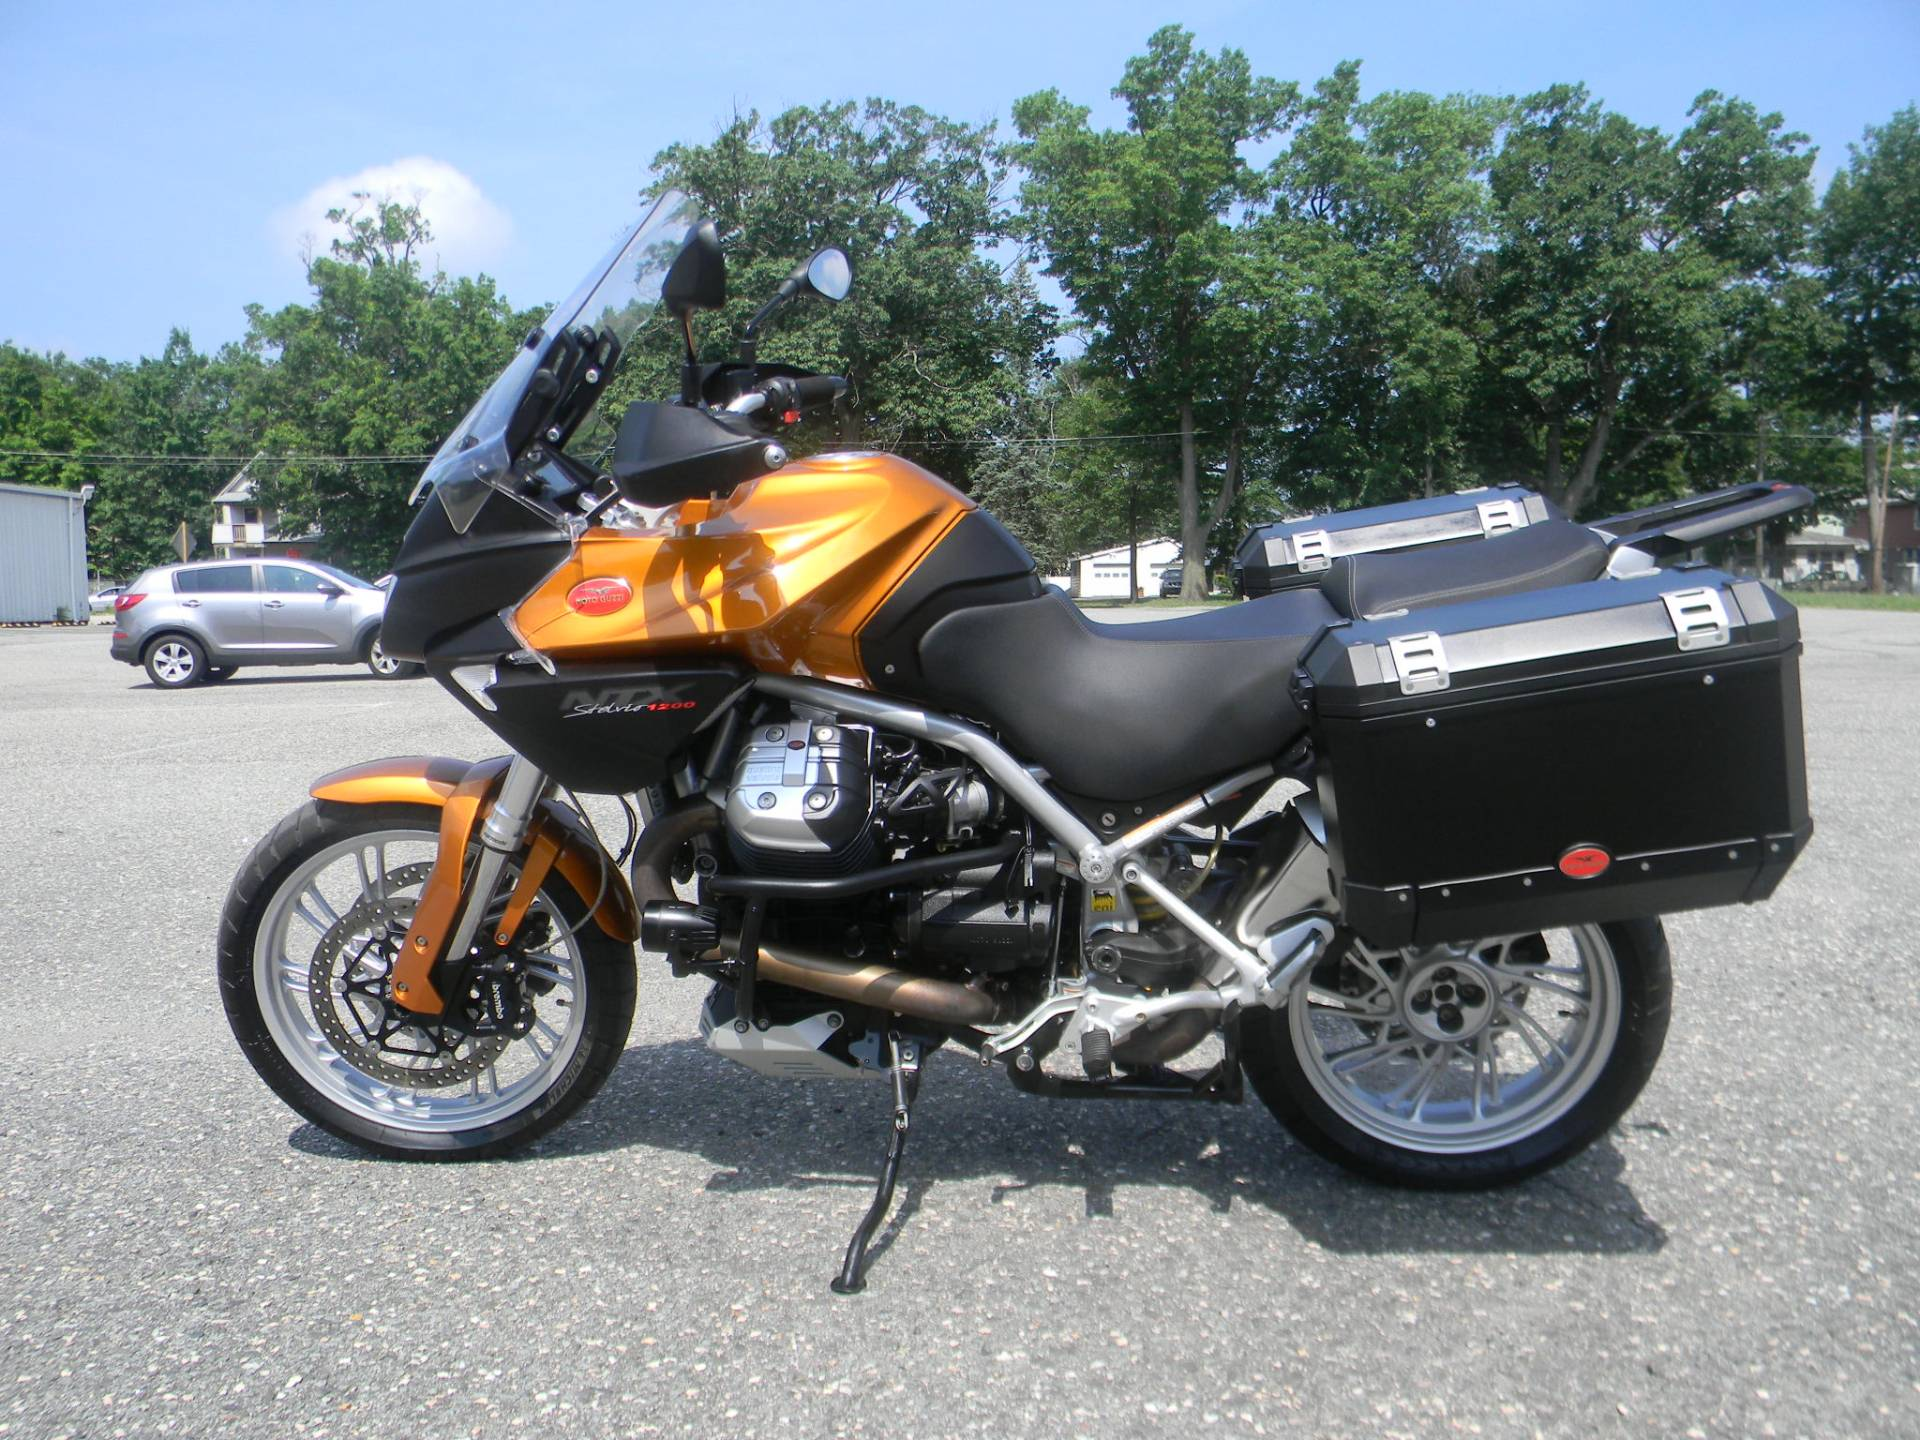 2013 Moto Guzzi Stelvio 1200 NTX ABS in Springfield, Massachusetts - Photo 5